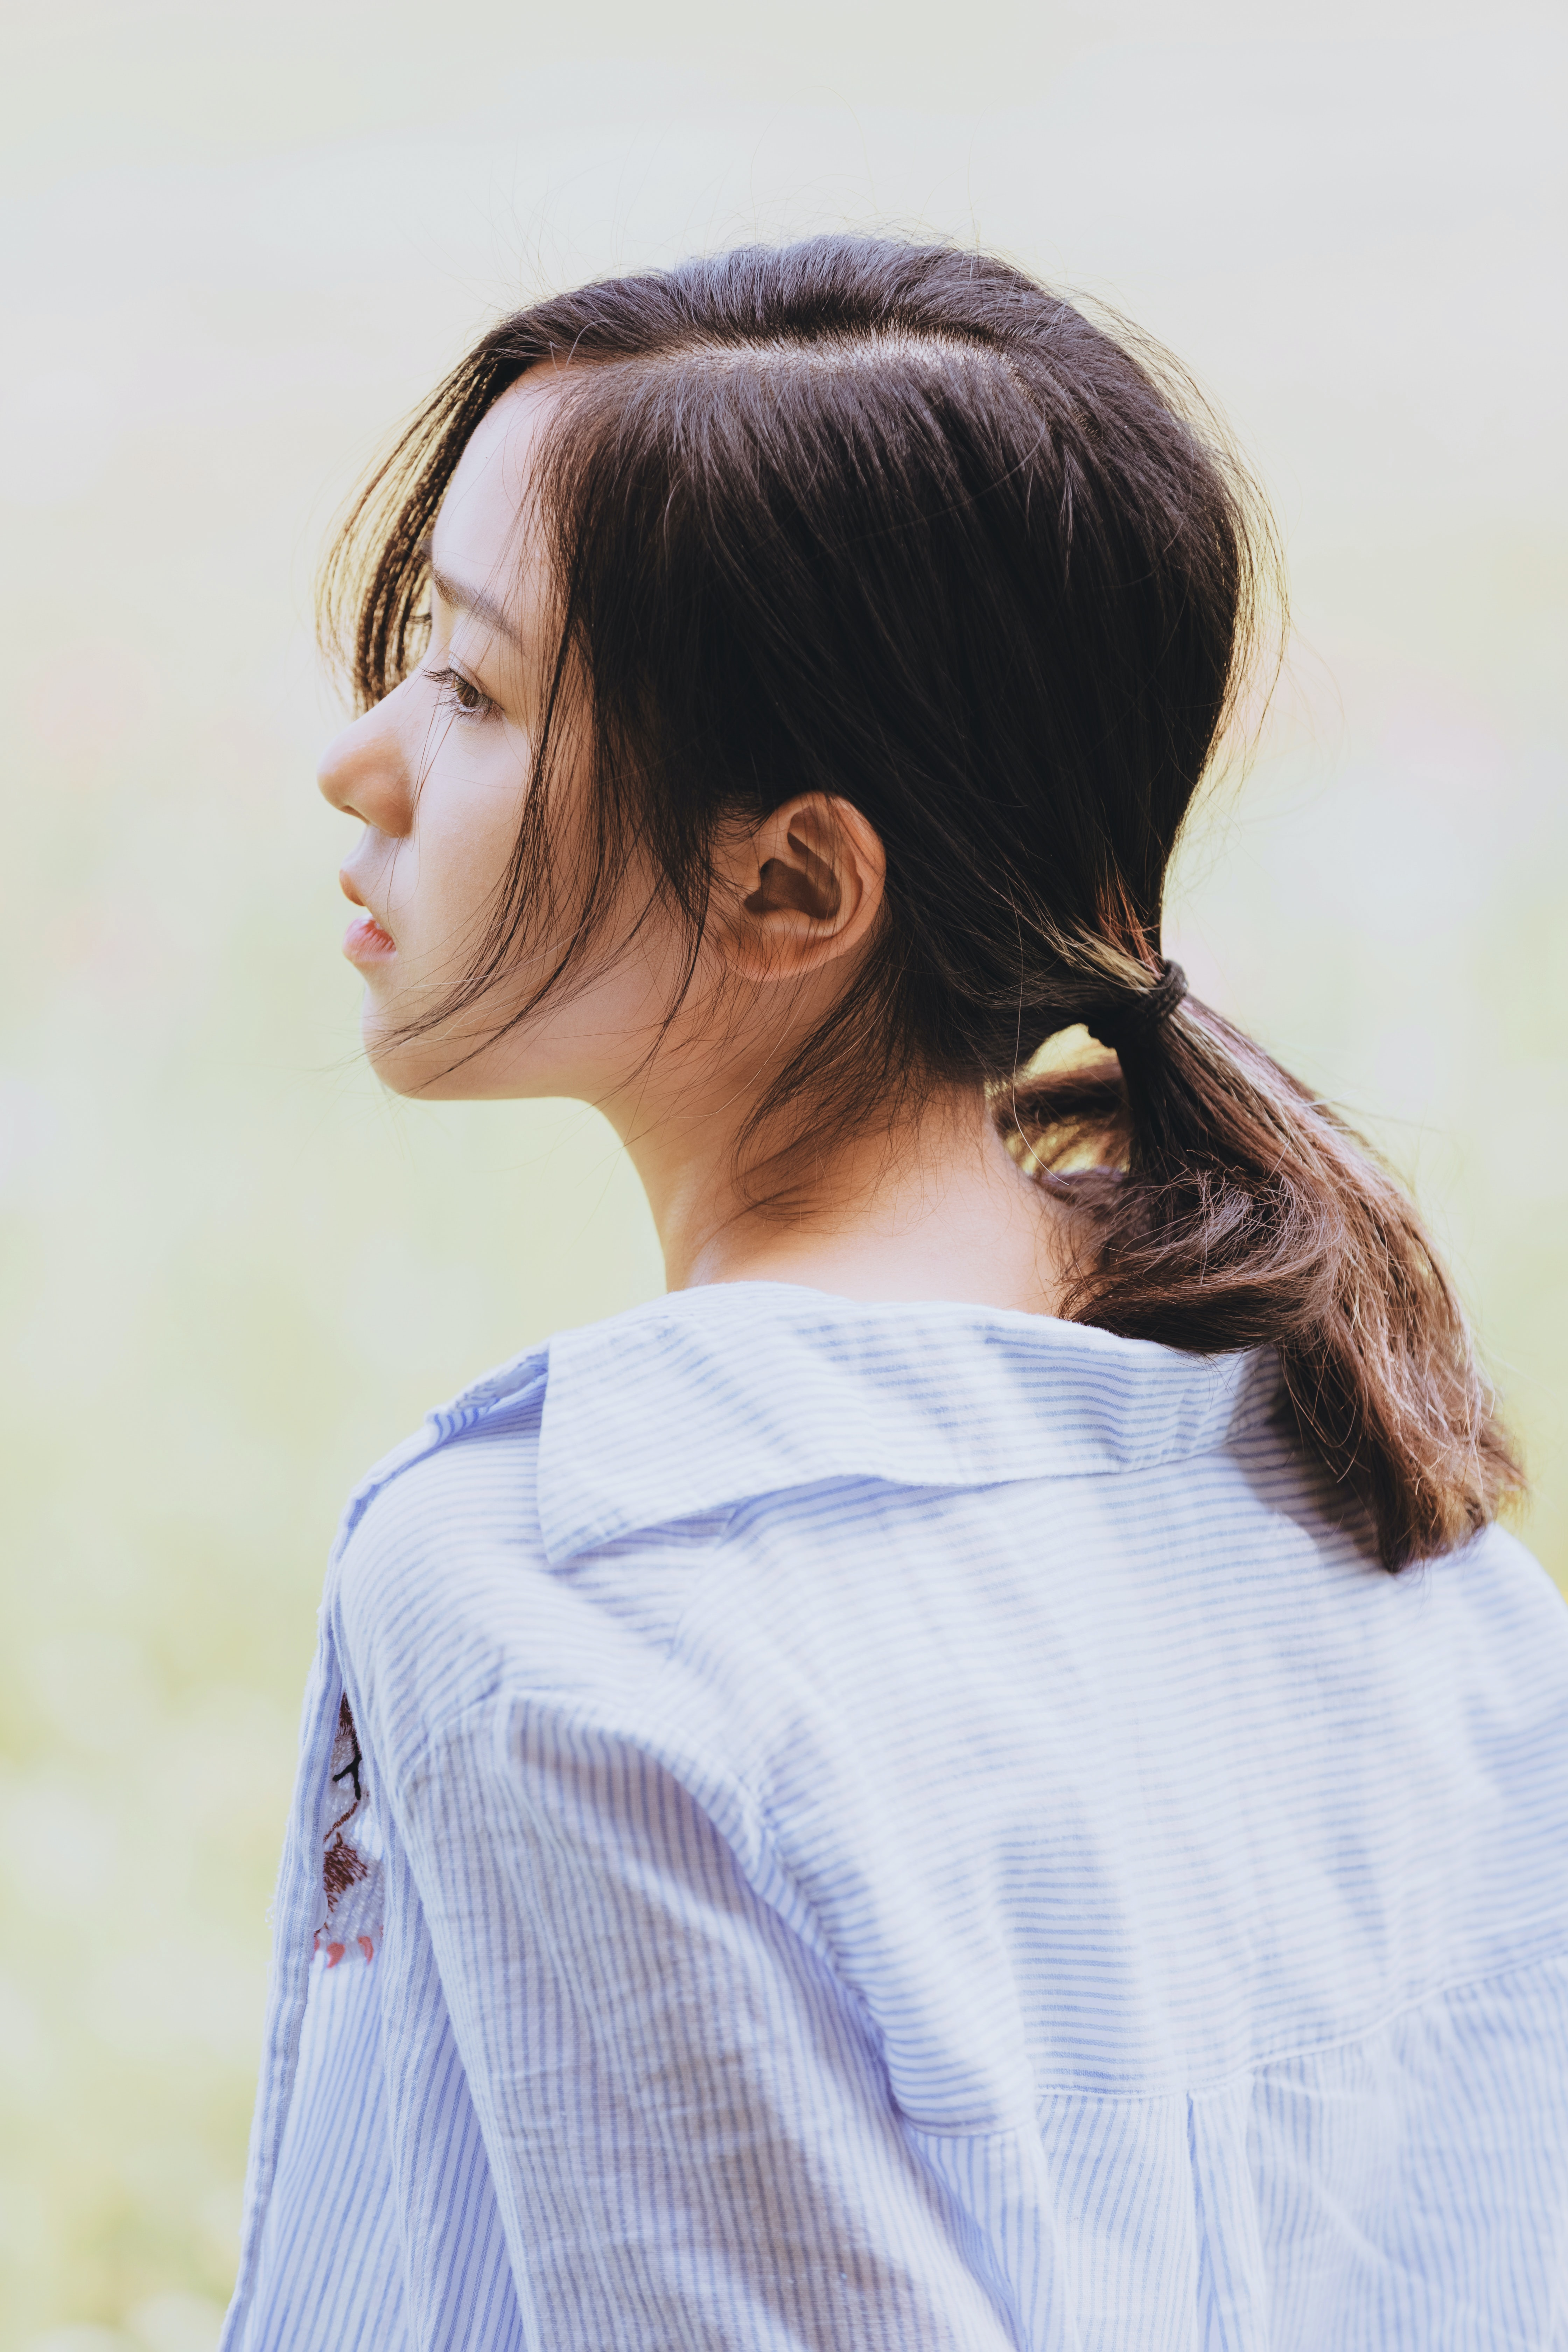 woman wearing blue shirt with pony tail